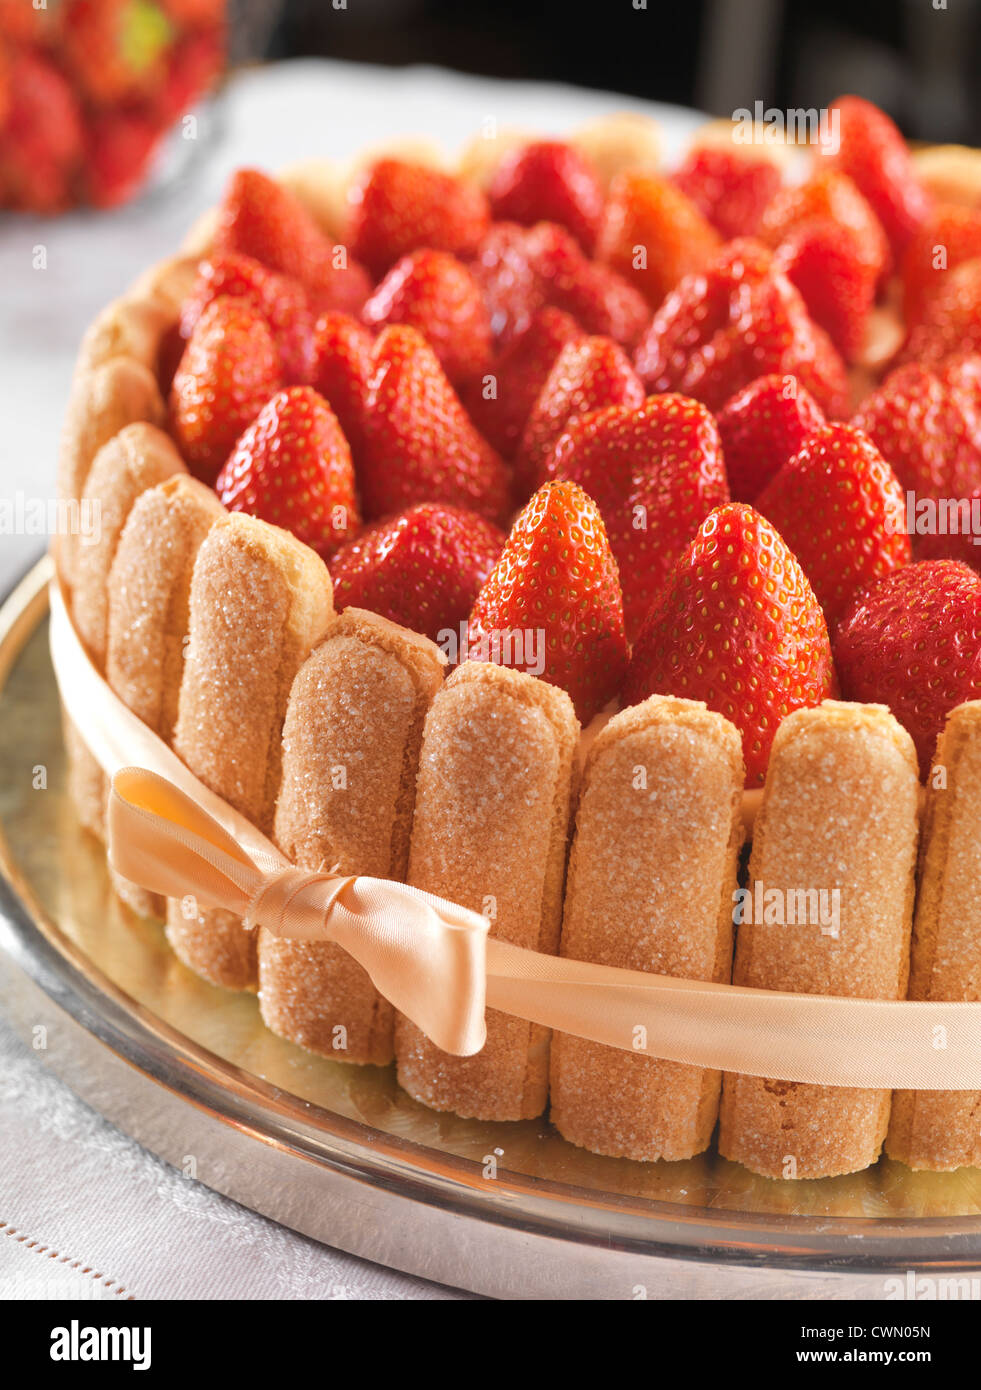 Cake with Strawberries, Charlotte Malakoff Stock Photo ...